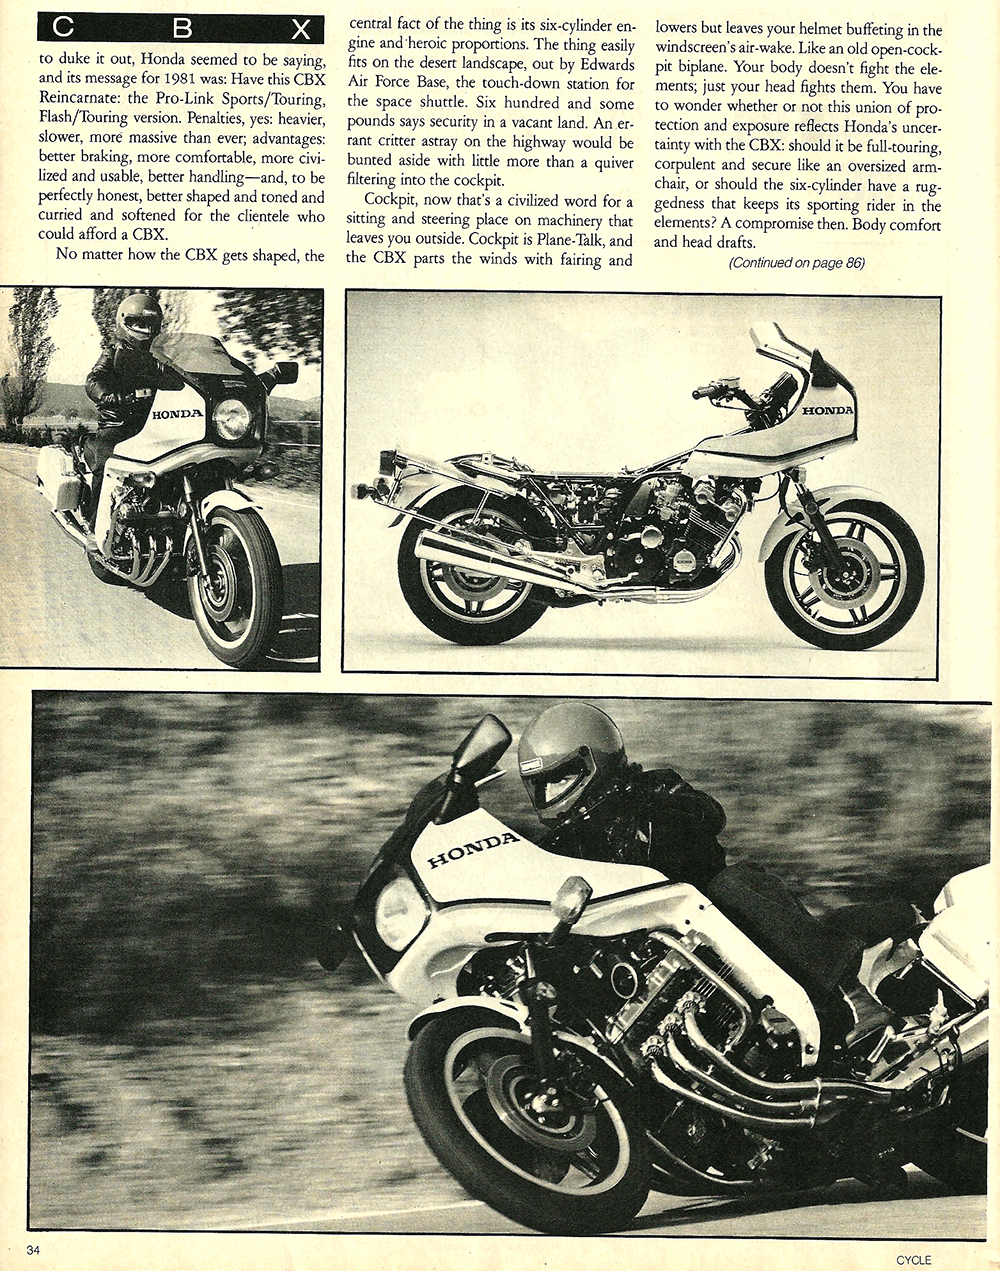 1982 Honda CBX vs CX 500 Turbo road test 04.jpg